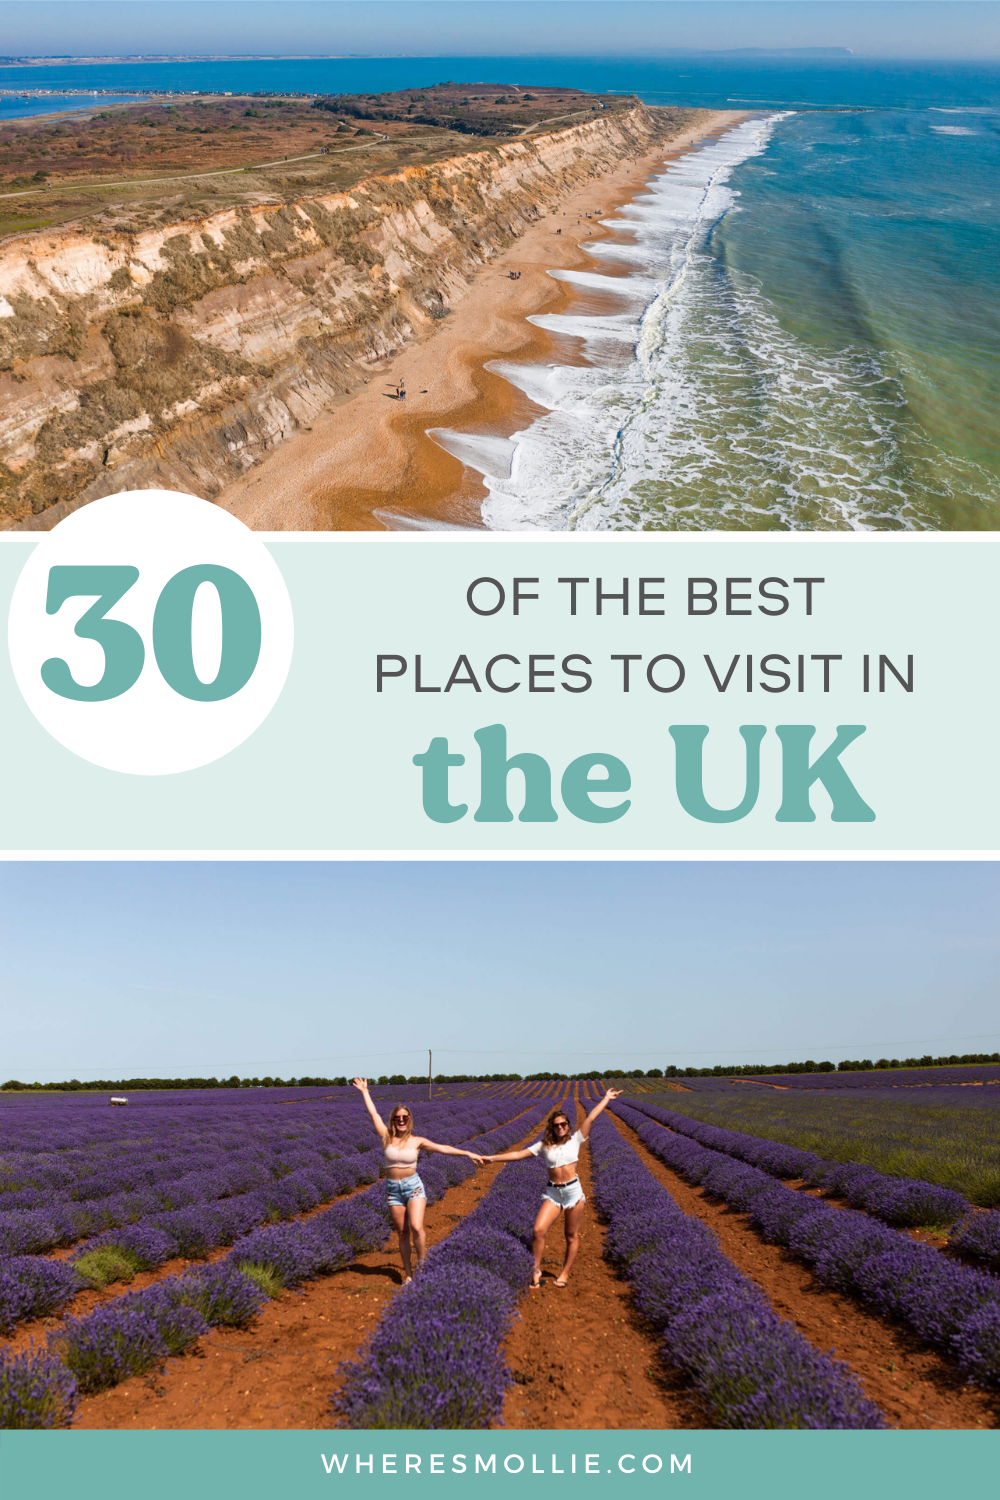 30 of the best places to visit in the UK